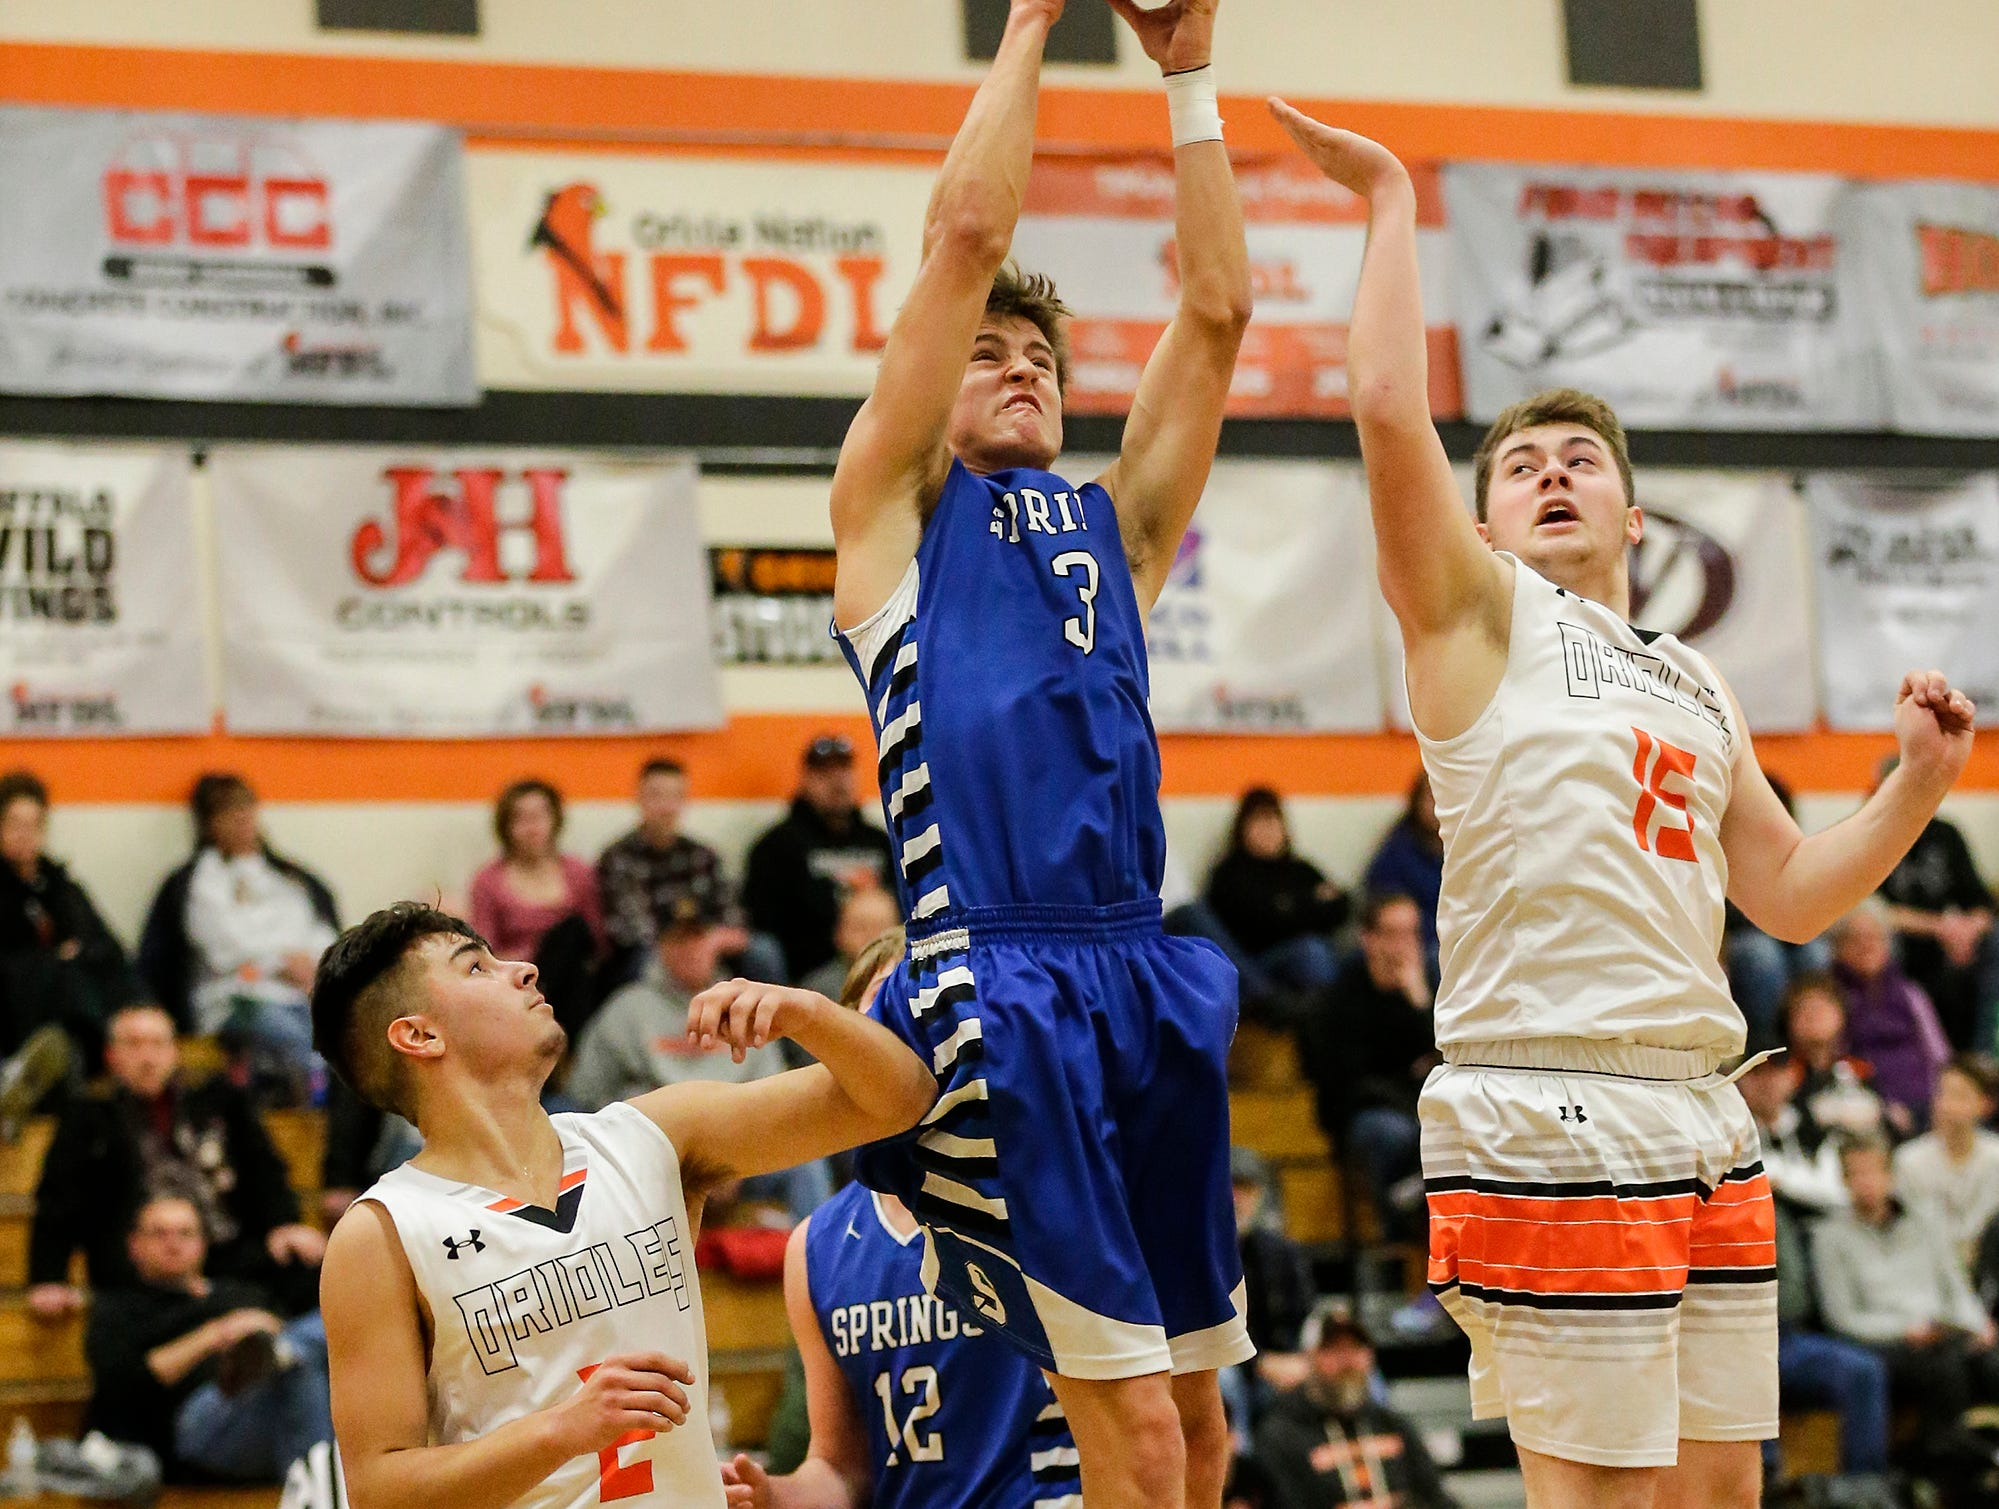 St. Mary's Springs Academy's boys basketball's Mitch Waechter gets this rebound over North Fond du Lac High School's Mathias Gilbertson during their game Friday, December 7, 2018 in North Fond du Lac, Wisconsin. Doug Raflik/USA TODAY NETWORK-Wisconsin